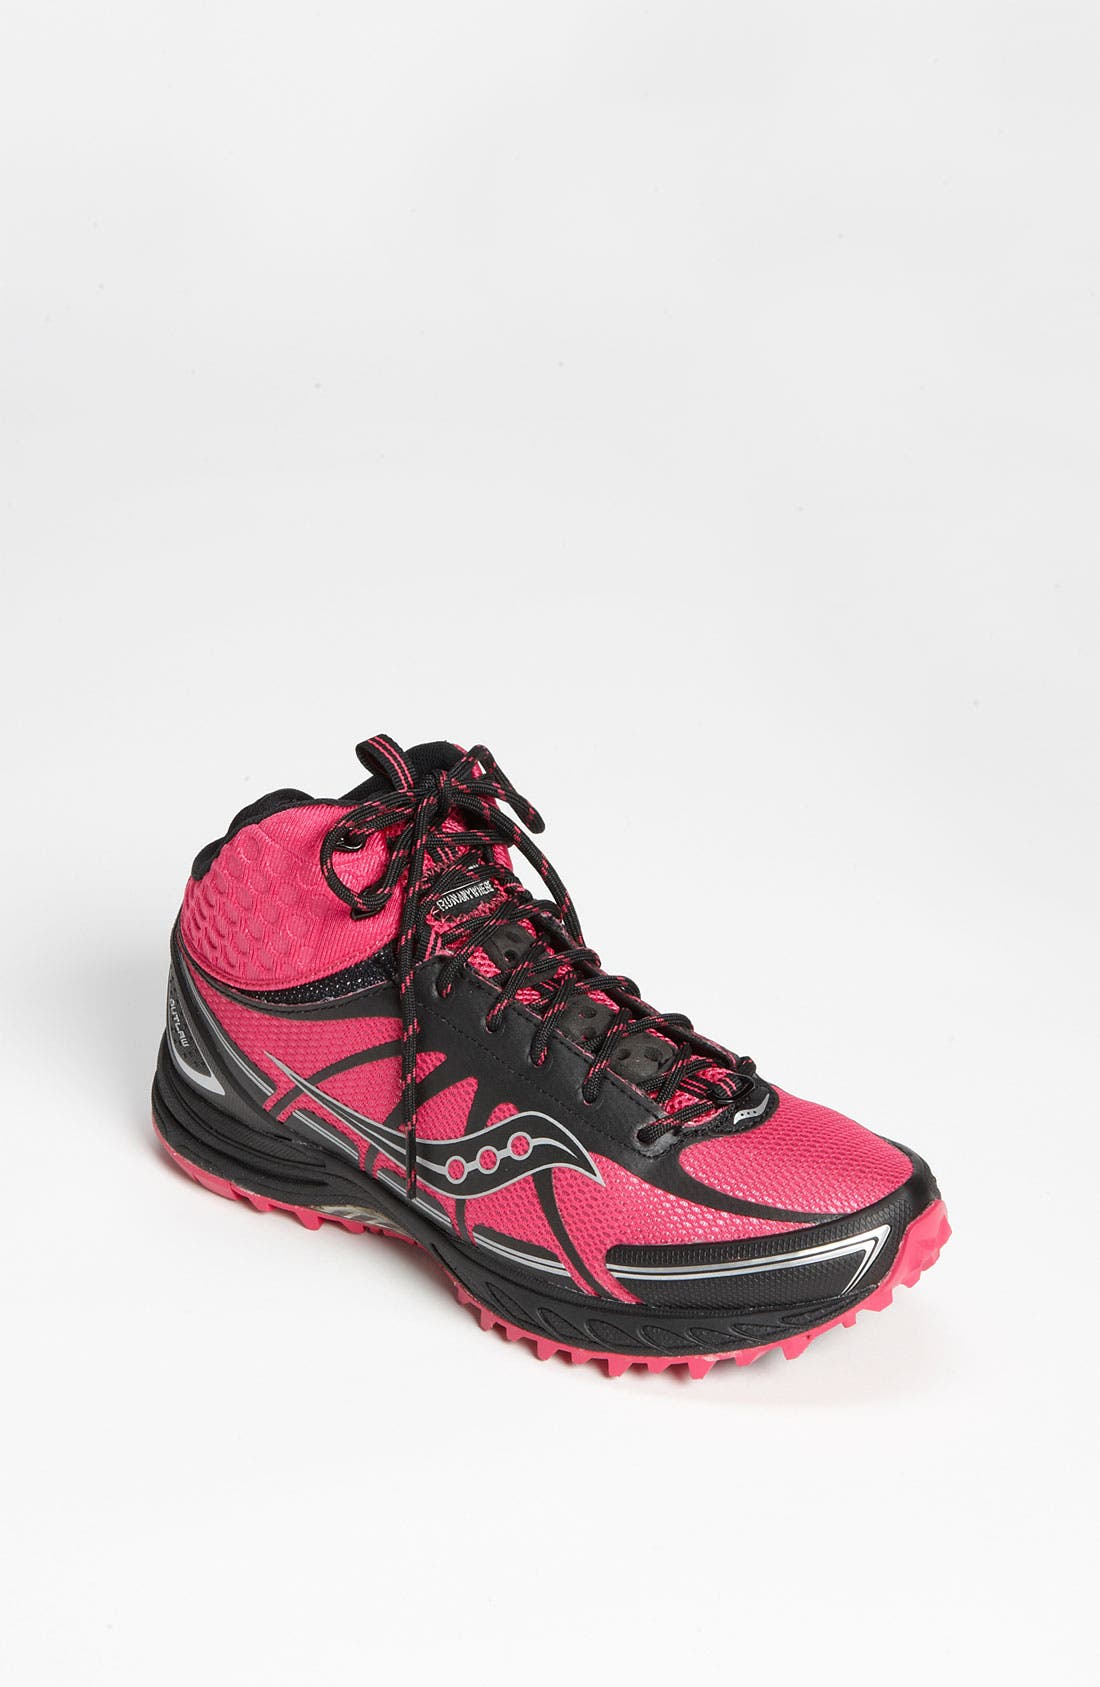 Alternate Image 1 Selected - Saucony 'ProGrid Outlaw' Running Shoe (Women)